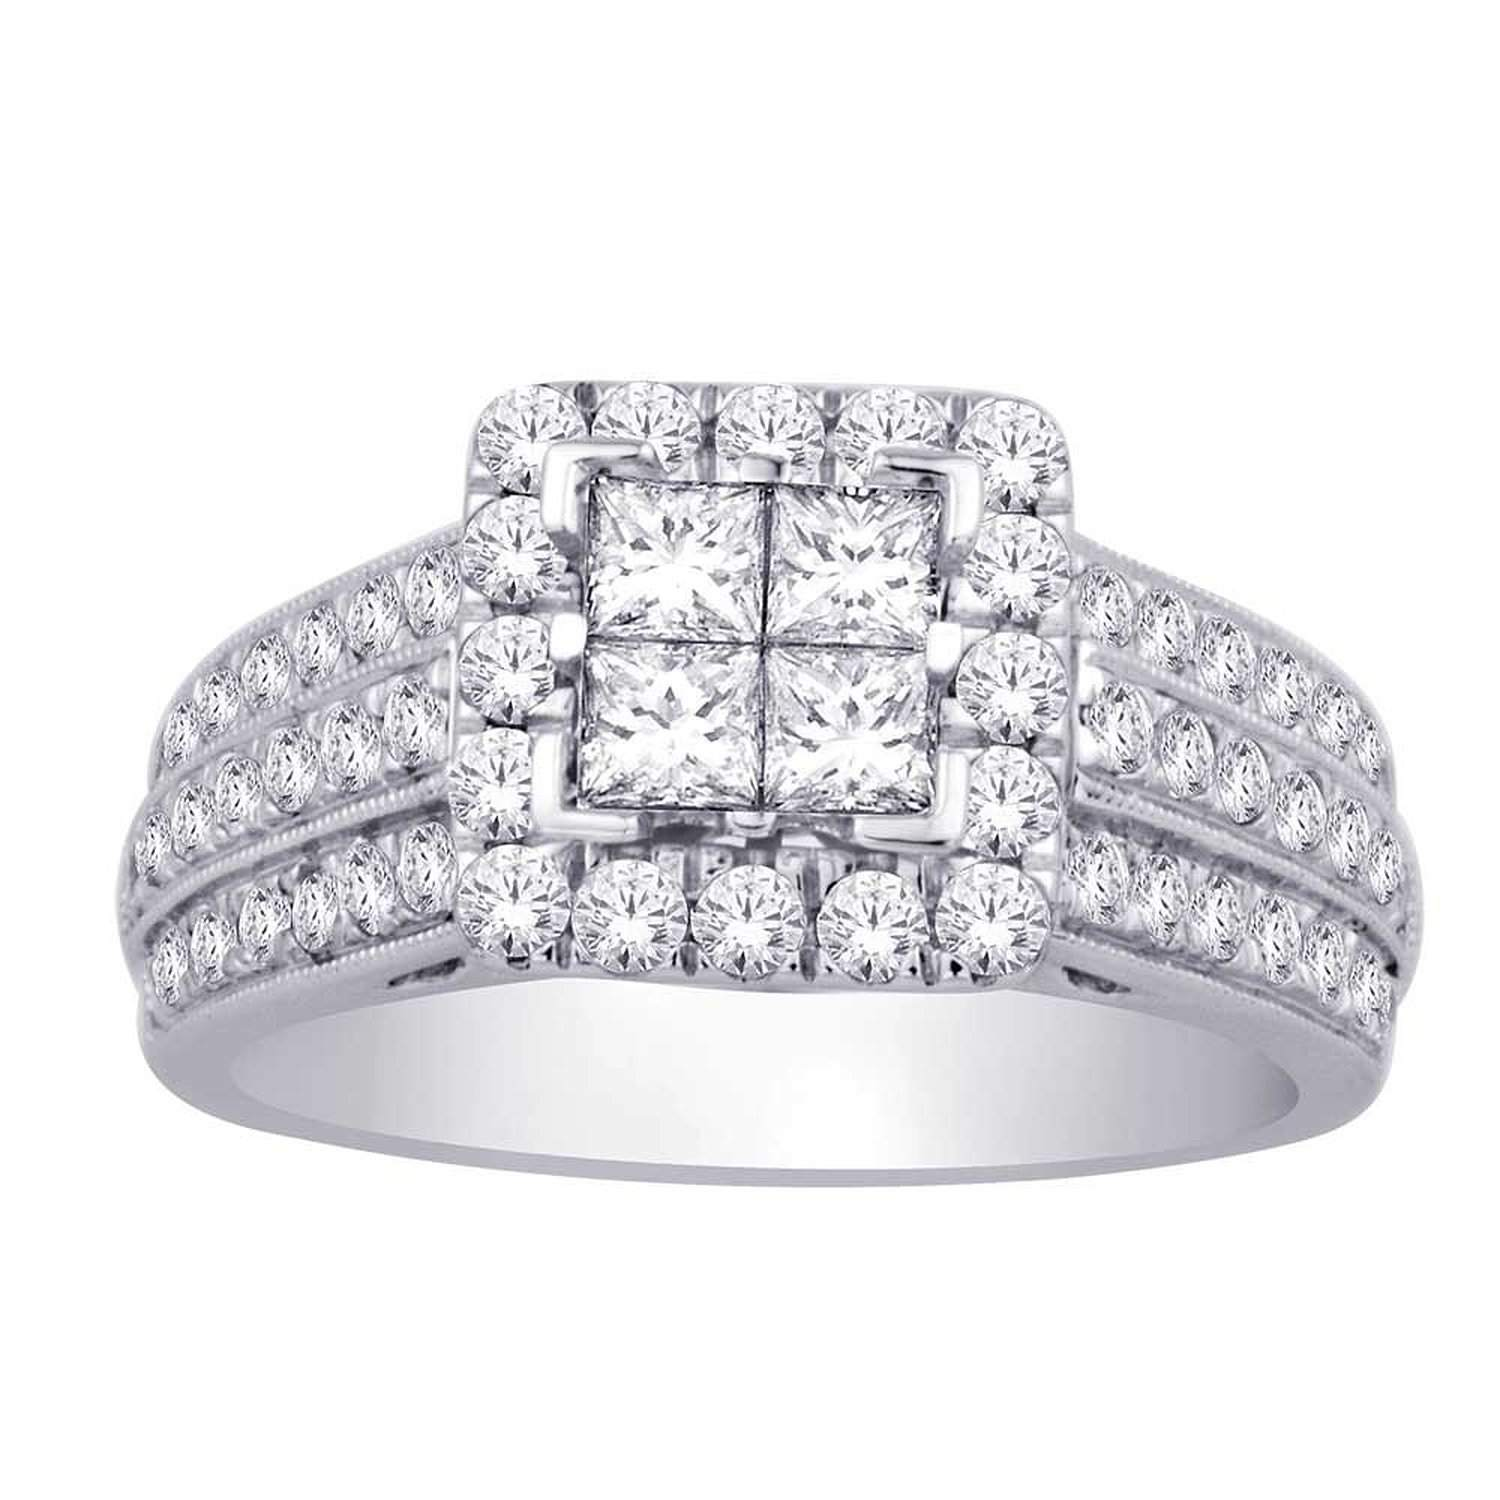 set out solid this gorgeous cut round an and diamond crafted ring itm with white setting gold princess features ctw semi invisible diamonds cocktail is mount of